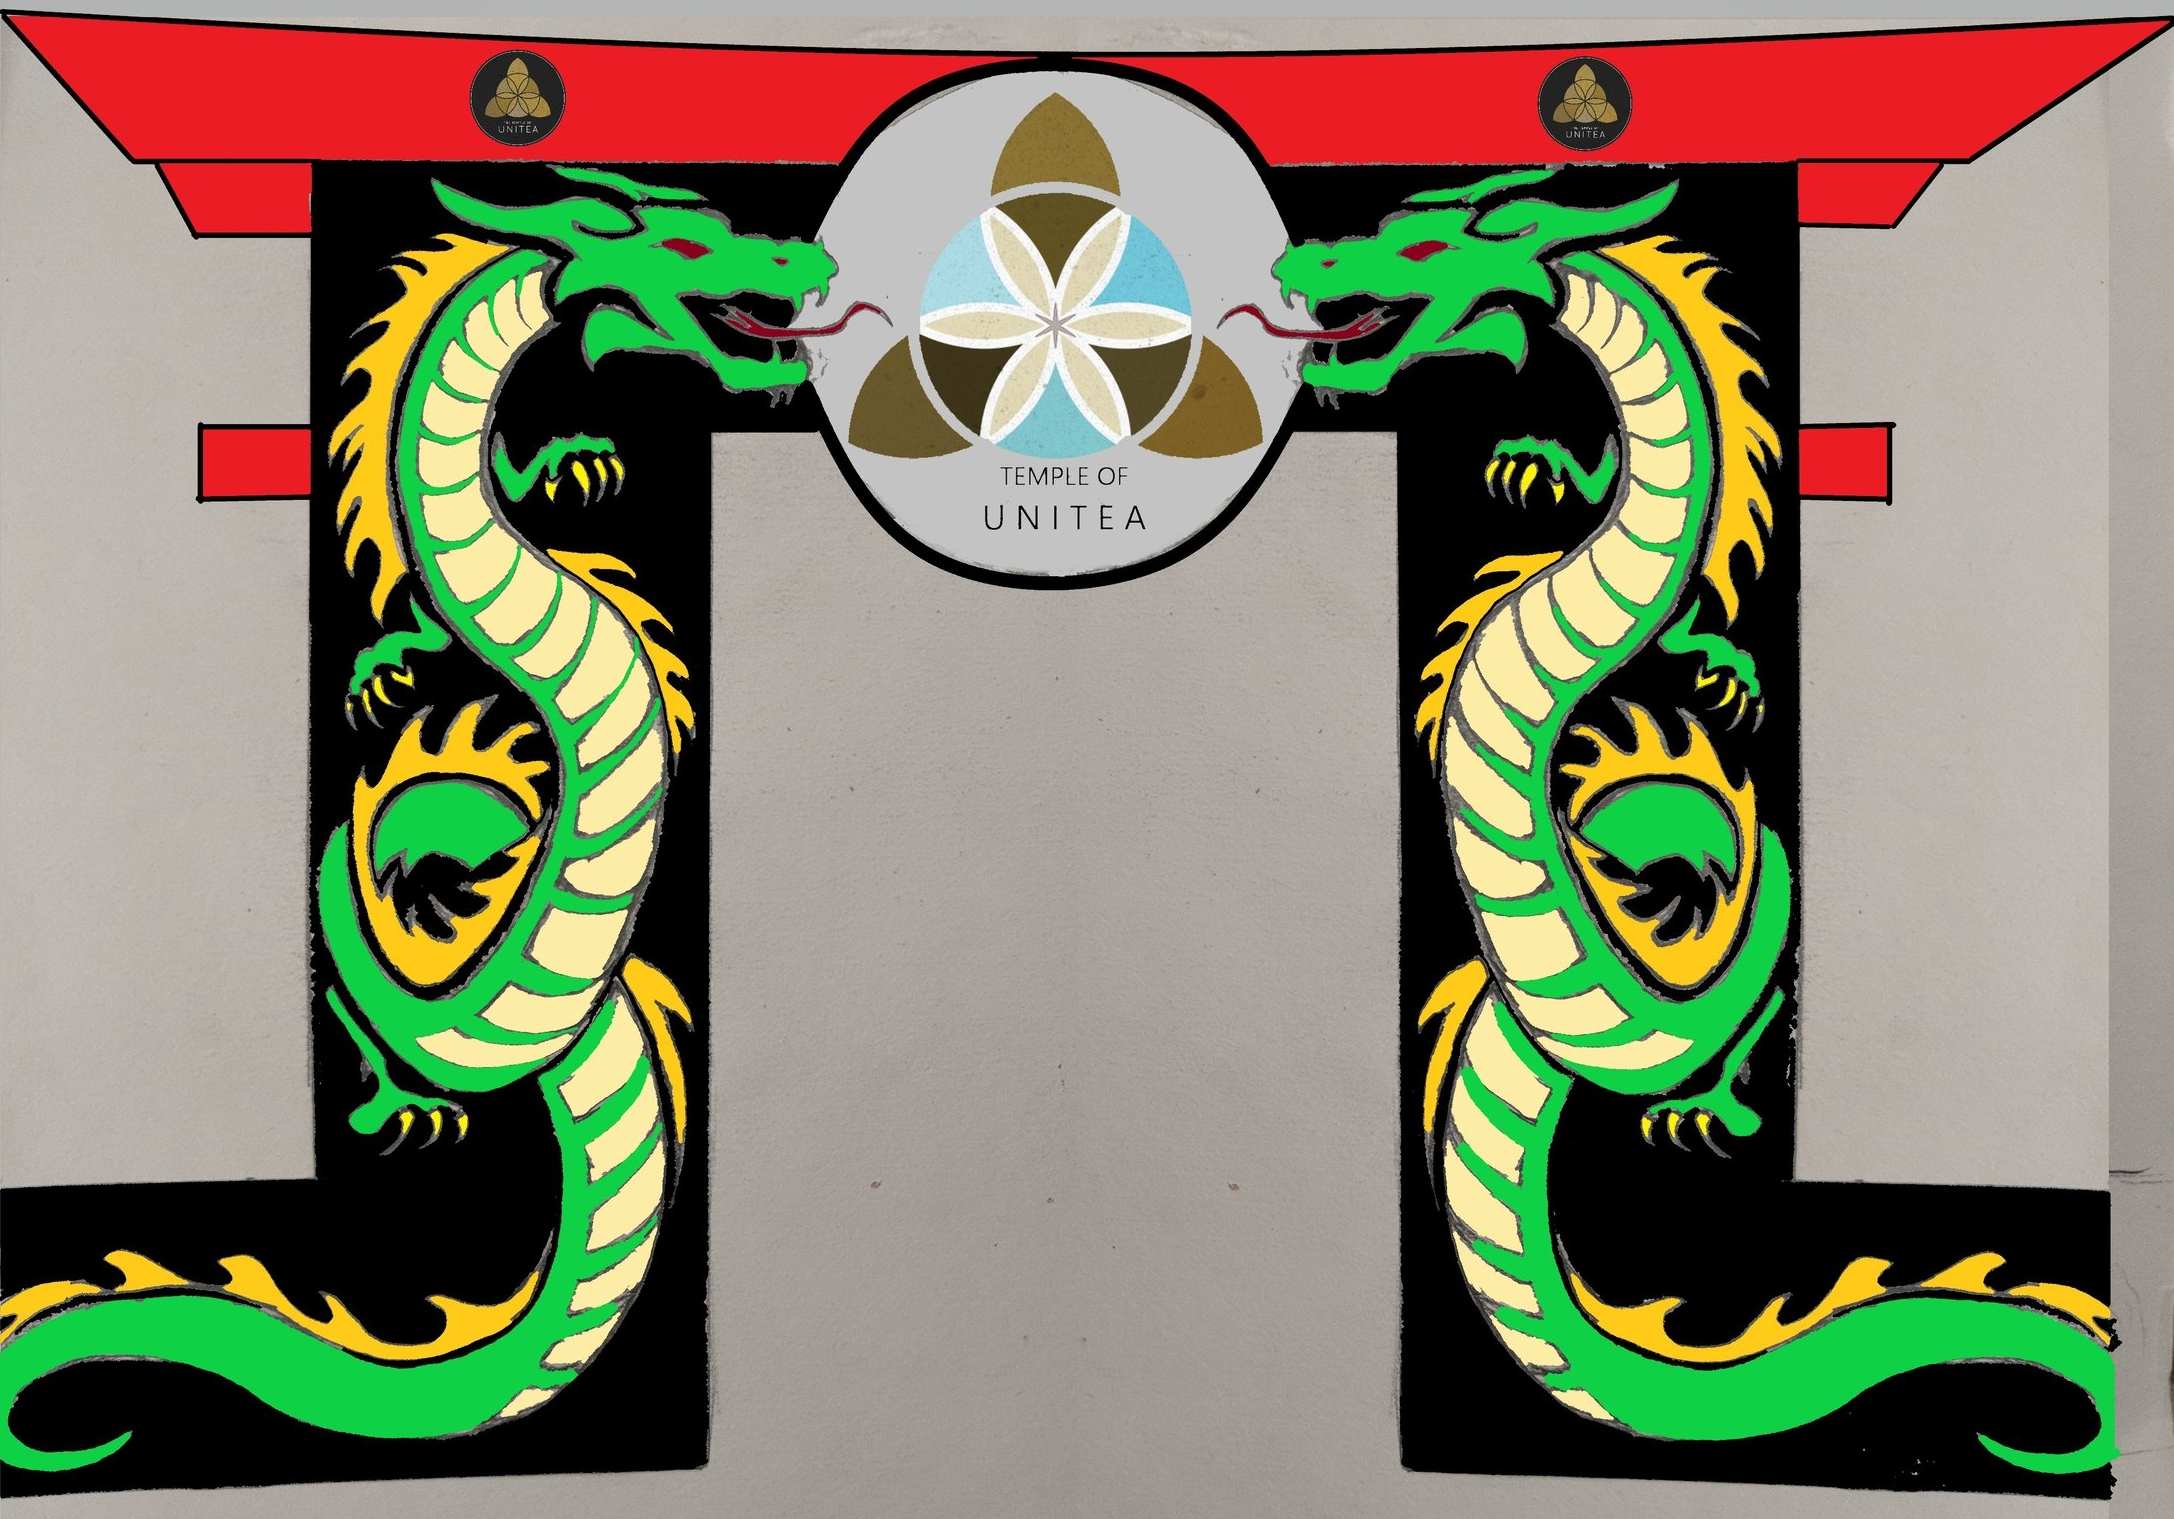 Design for camp entryway made up of 15' dragons, back lit with color changing LEDs to be a welcoming landmark night and day